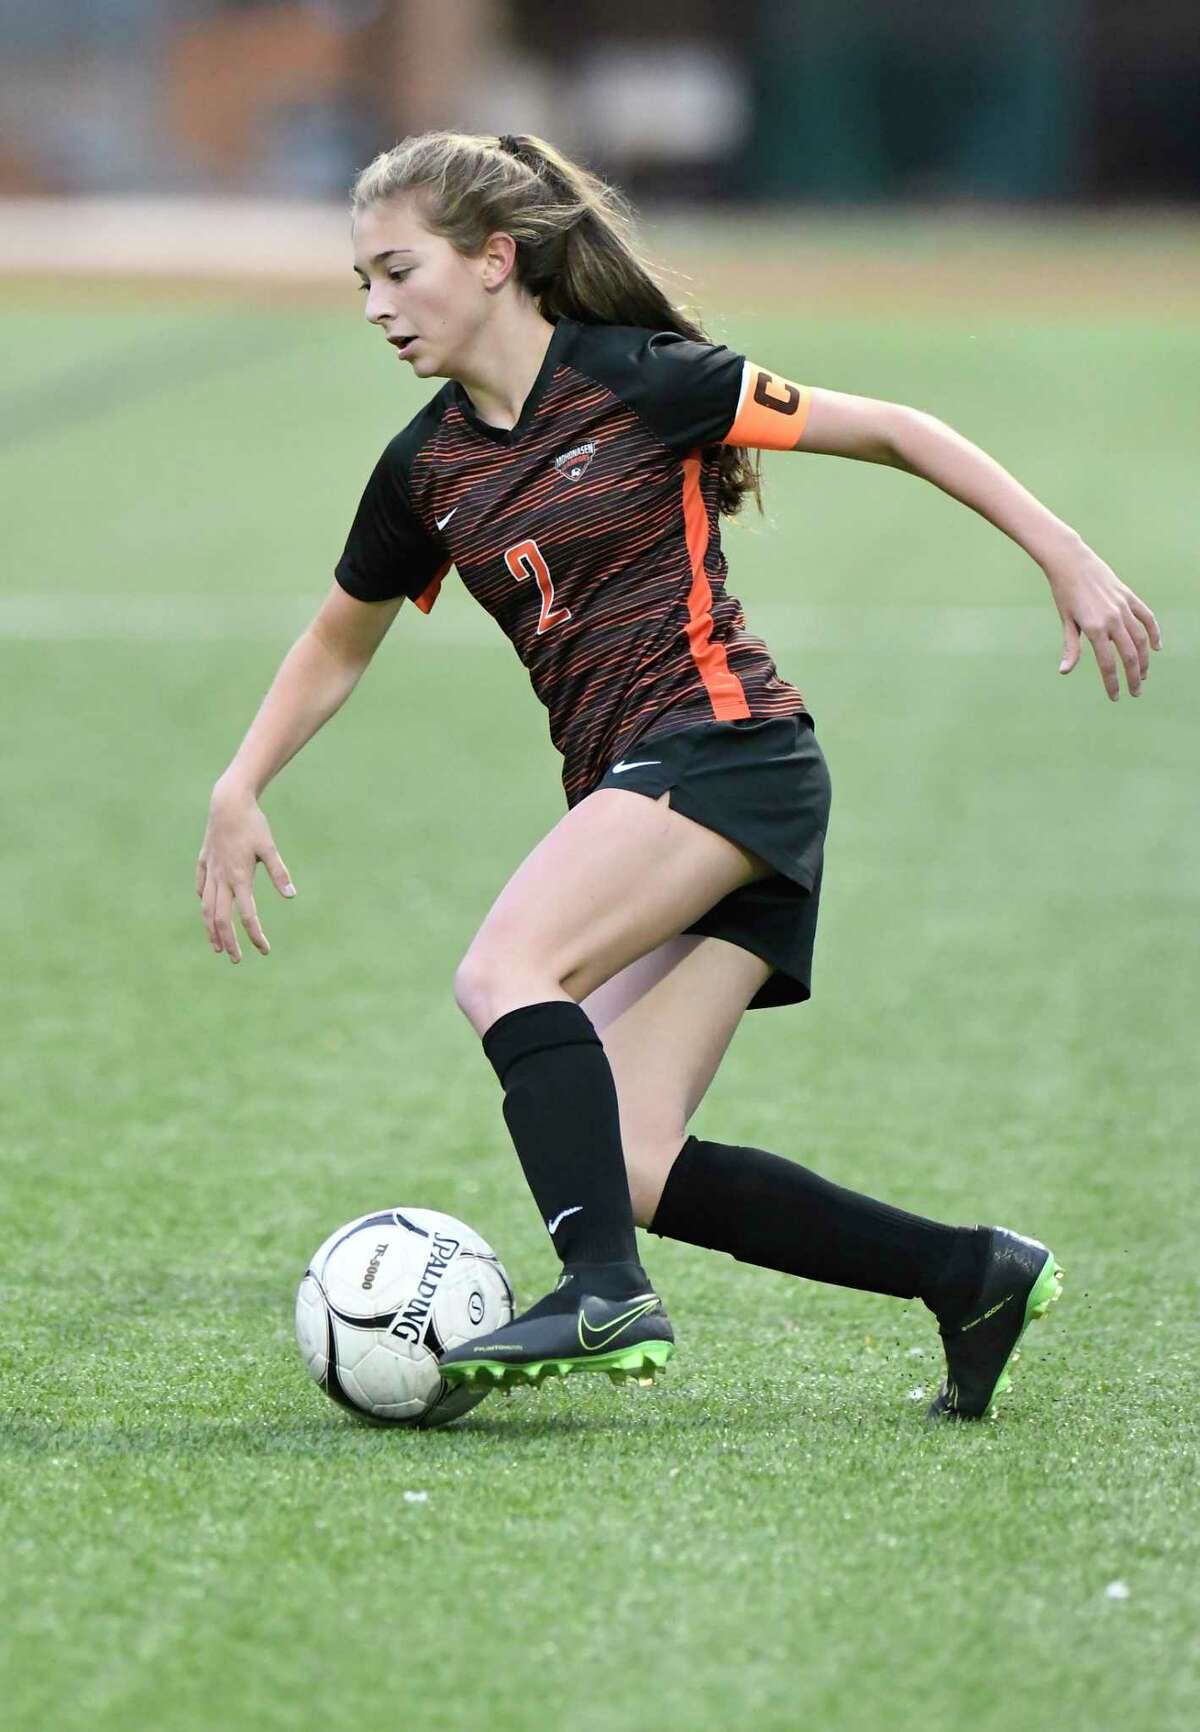 Mohonasen's Liv Raucci (2) moves the ball against Franklin Academy's during the first half of a girlsA?• Class A State sub regional high school soccer game Tuesday, November 5, 2019, in Troy, N.Y. (Hans Pennink / Special to the Times Union) ORG XMIT: 110619_gsoccer1_HP101